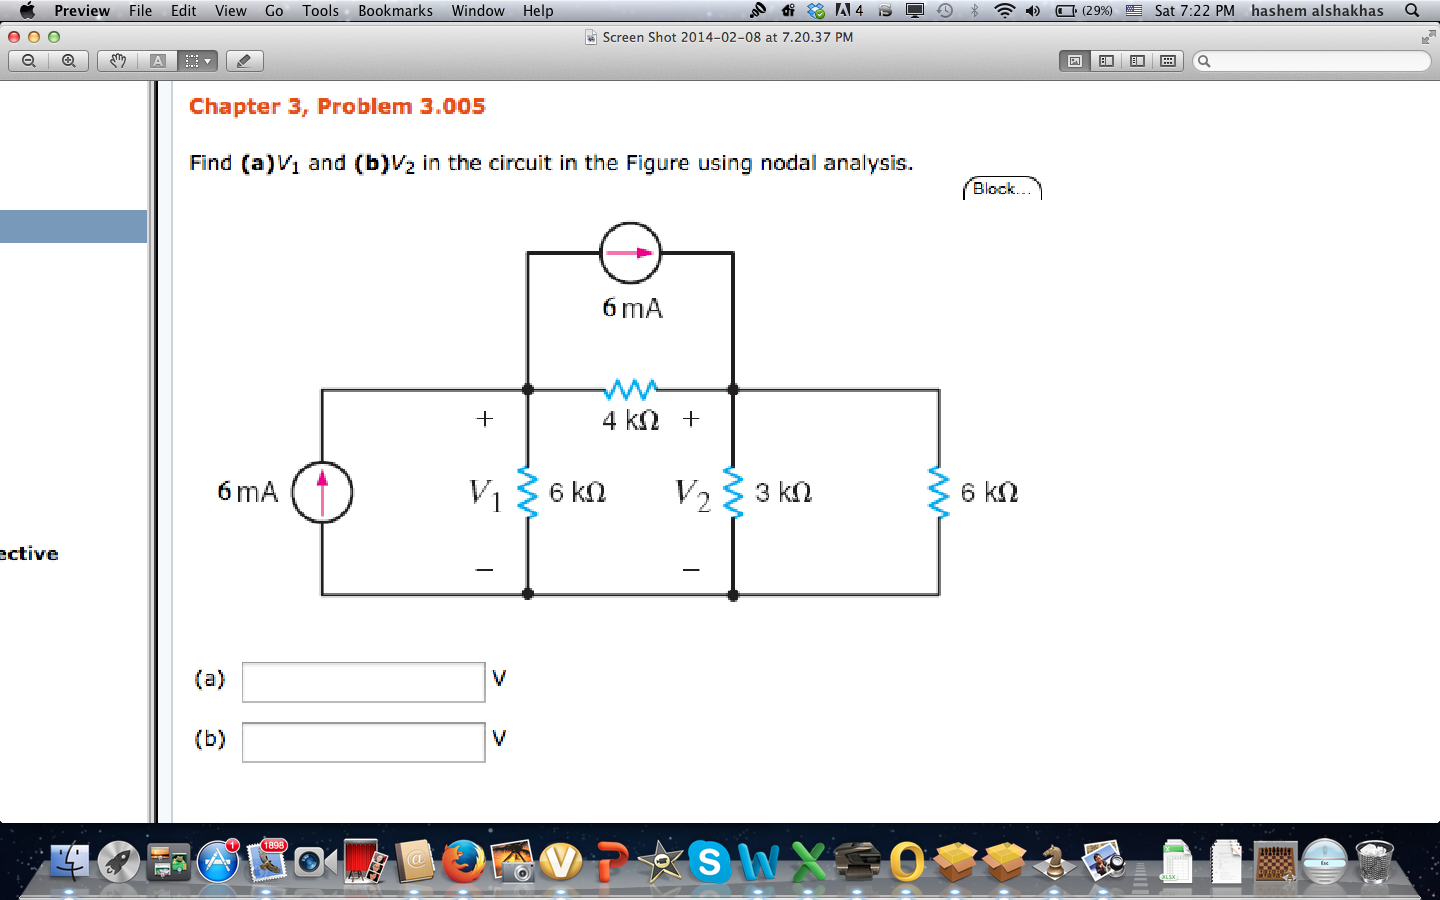 Find (a) V1 and (b) V2 in the circuit in the Figur